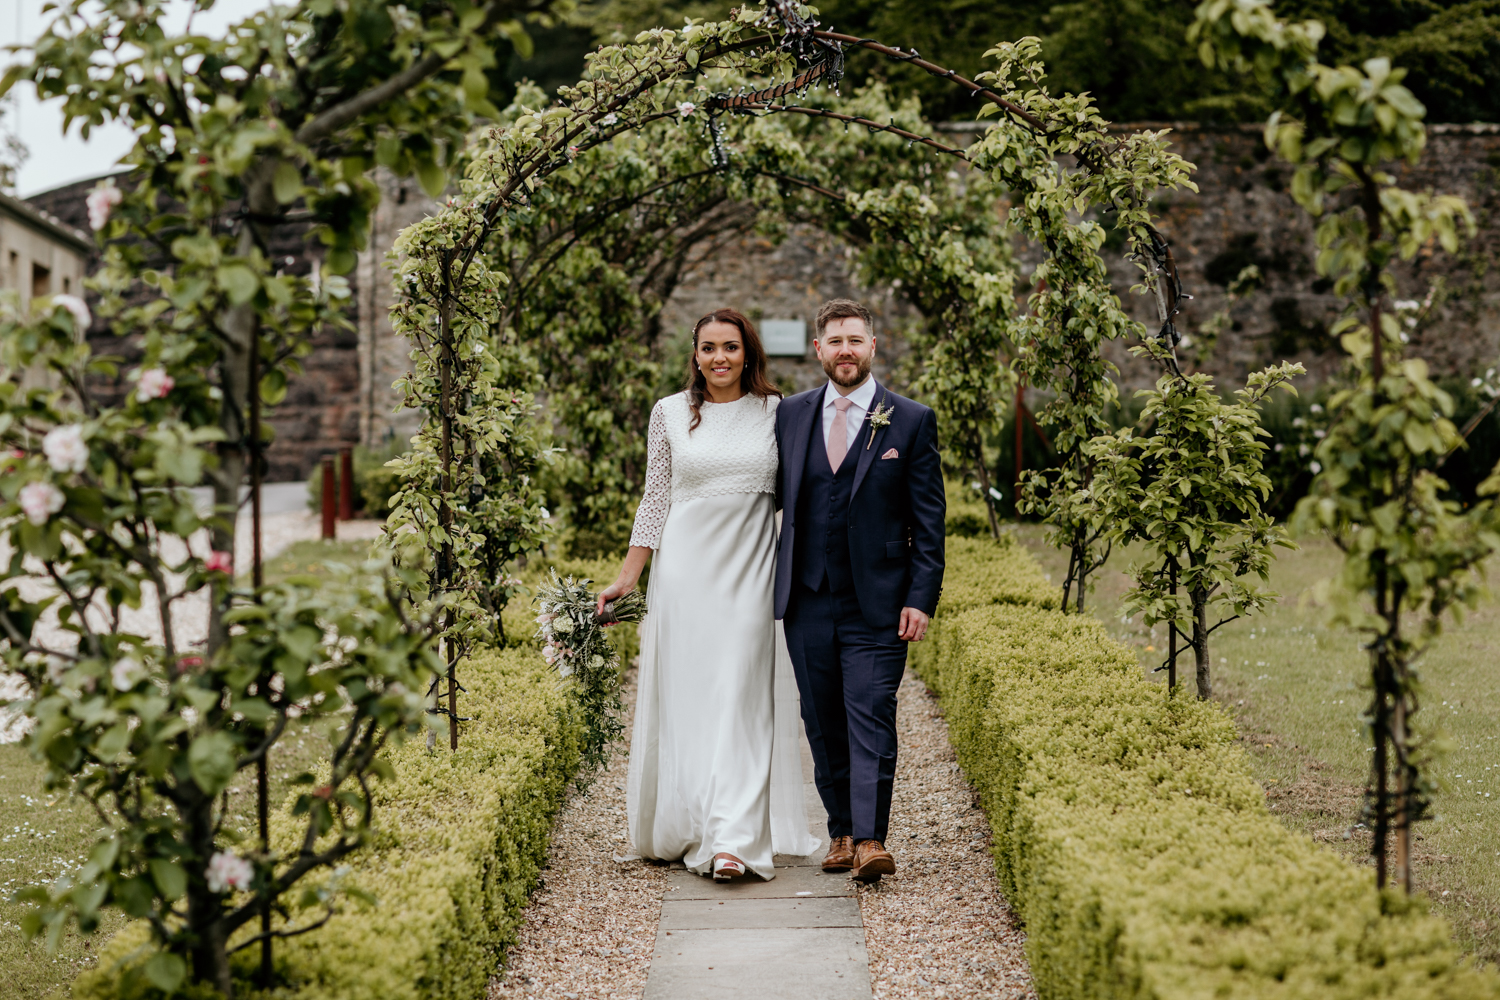 bride and groom during their wedding at Coombe Lodge Blagdon wedding